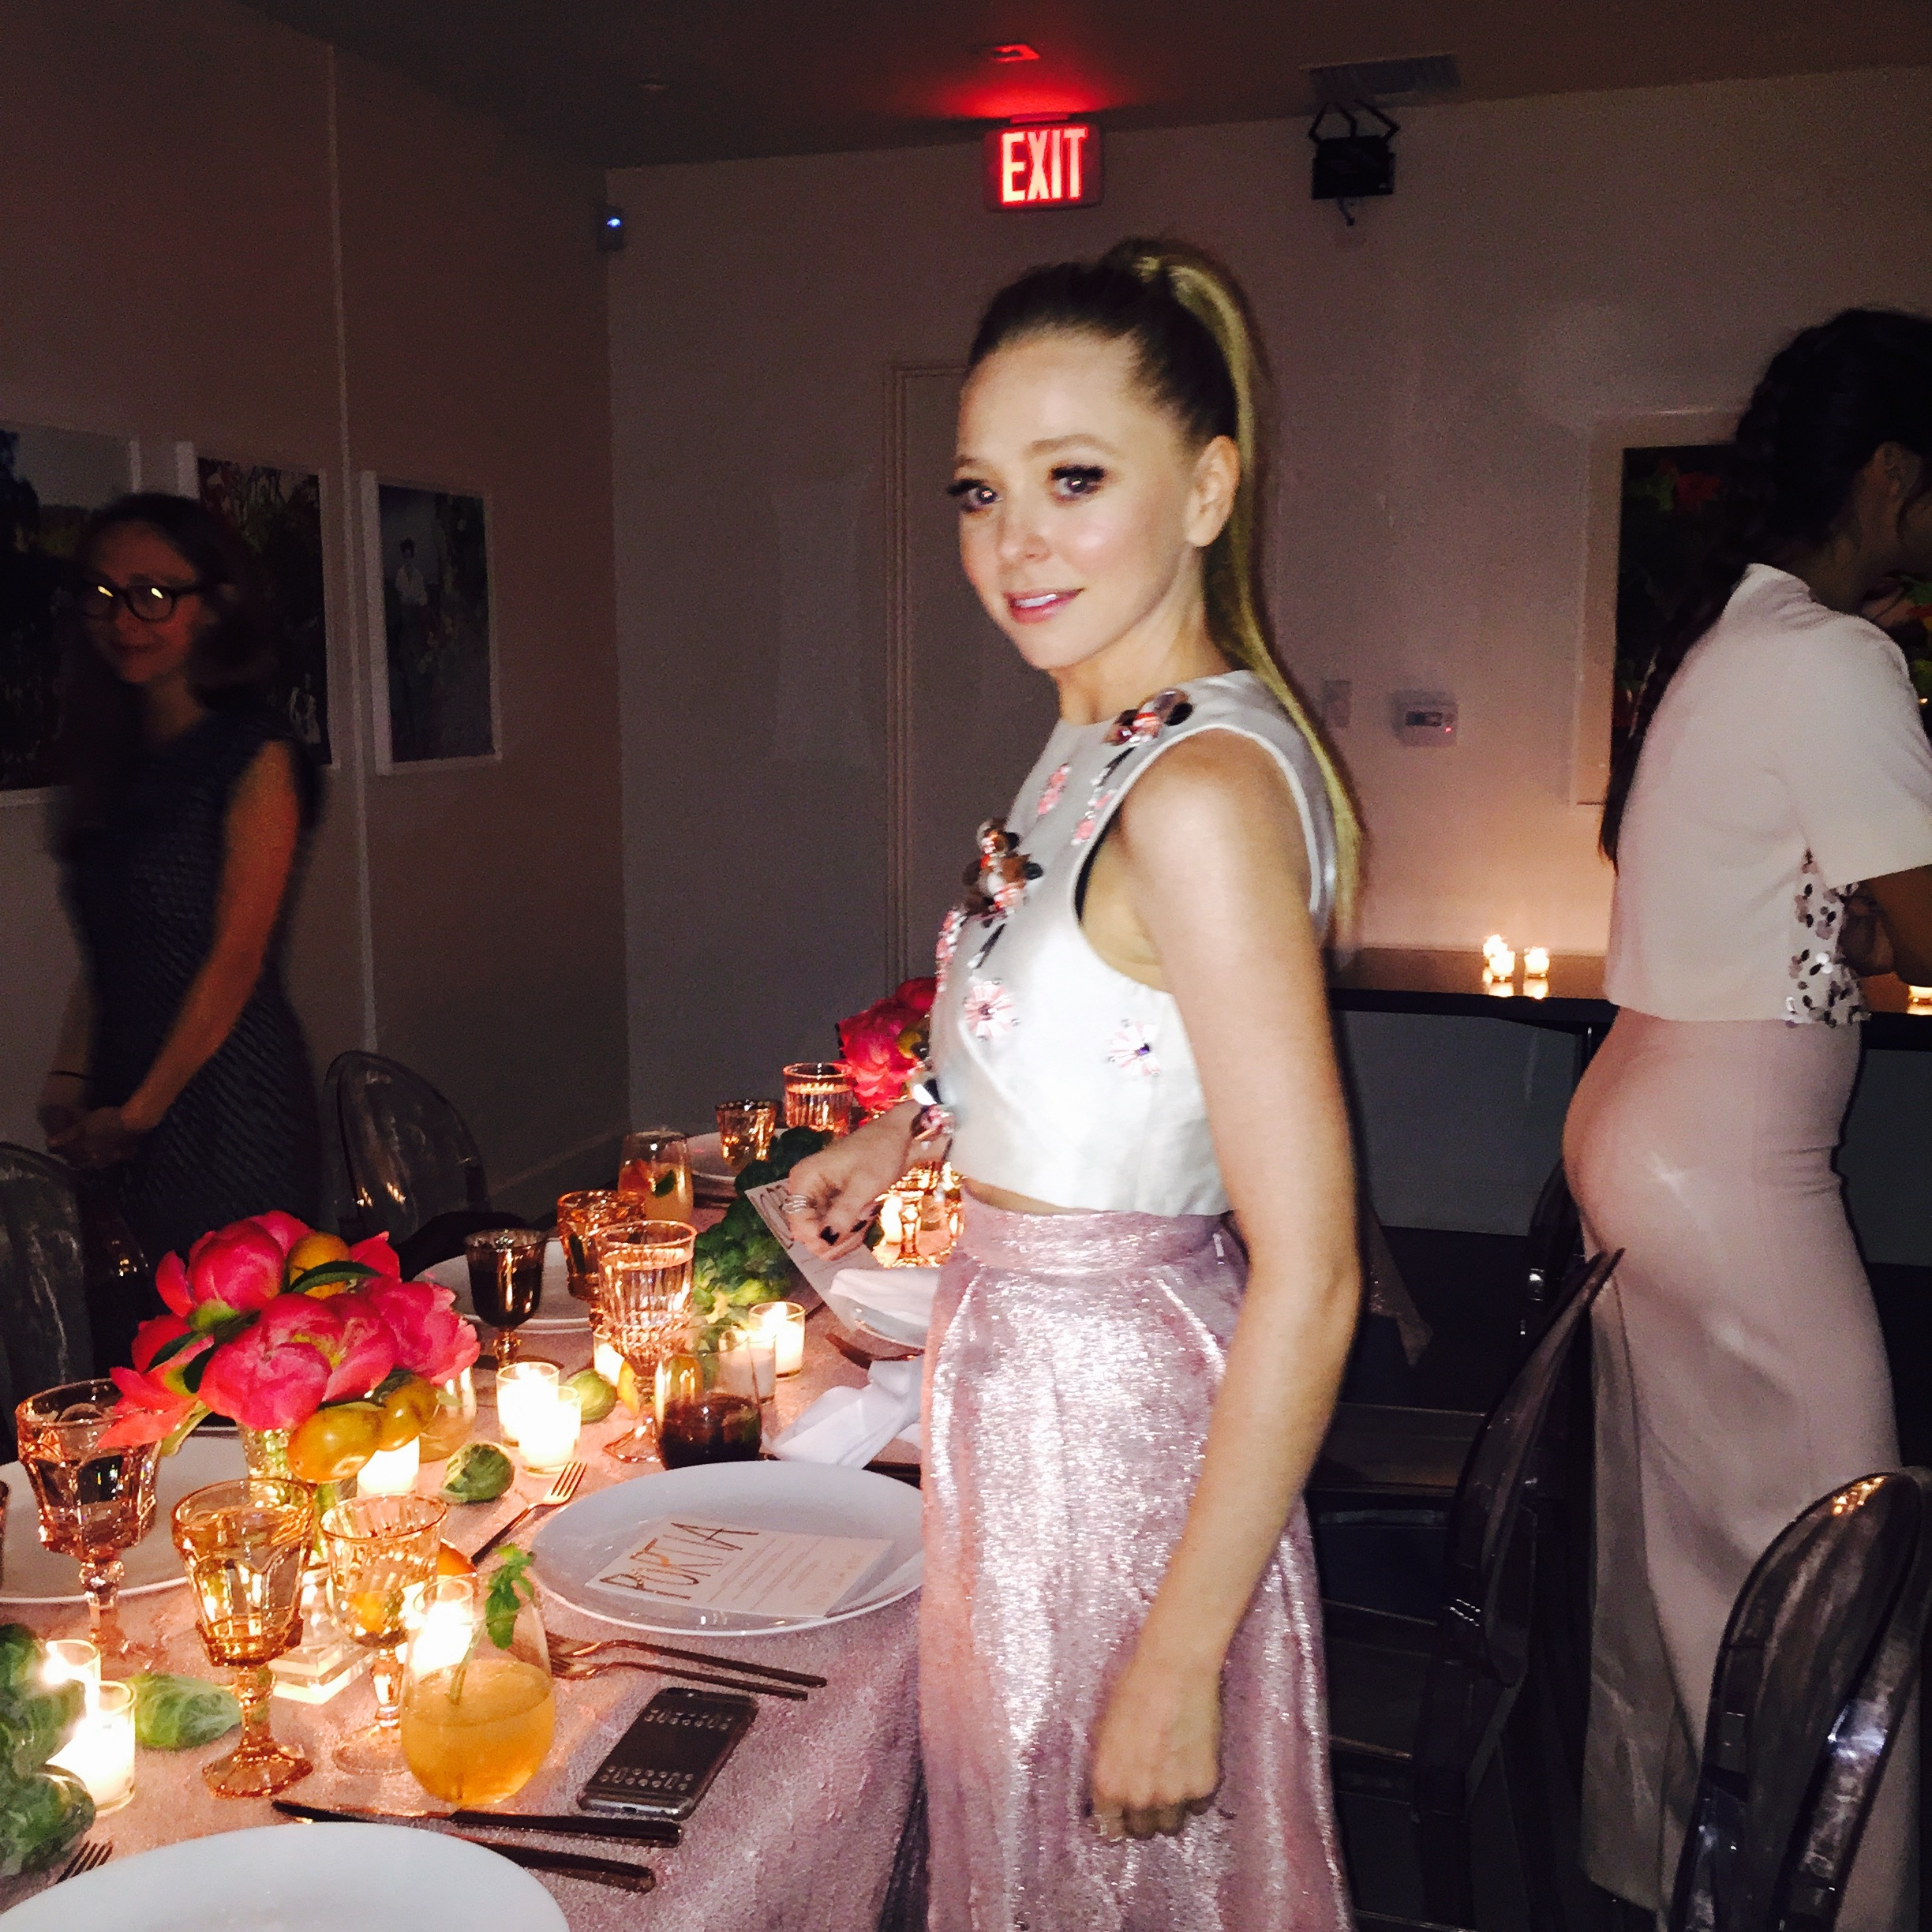 Actress  Portia Doubleday  enjoying Lela Rose's party. Don't you just love how beautifully Portia's skirt compliments Lela's tablecloth?